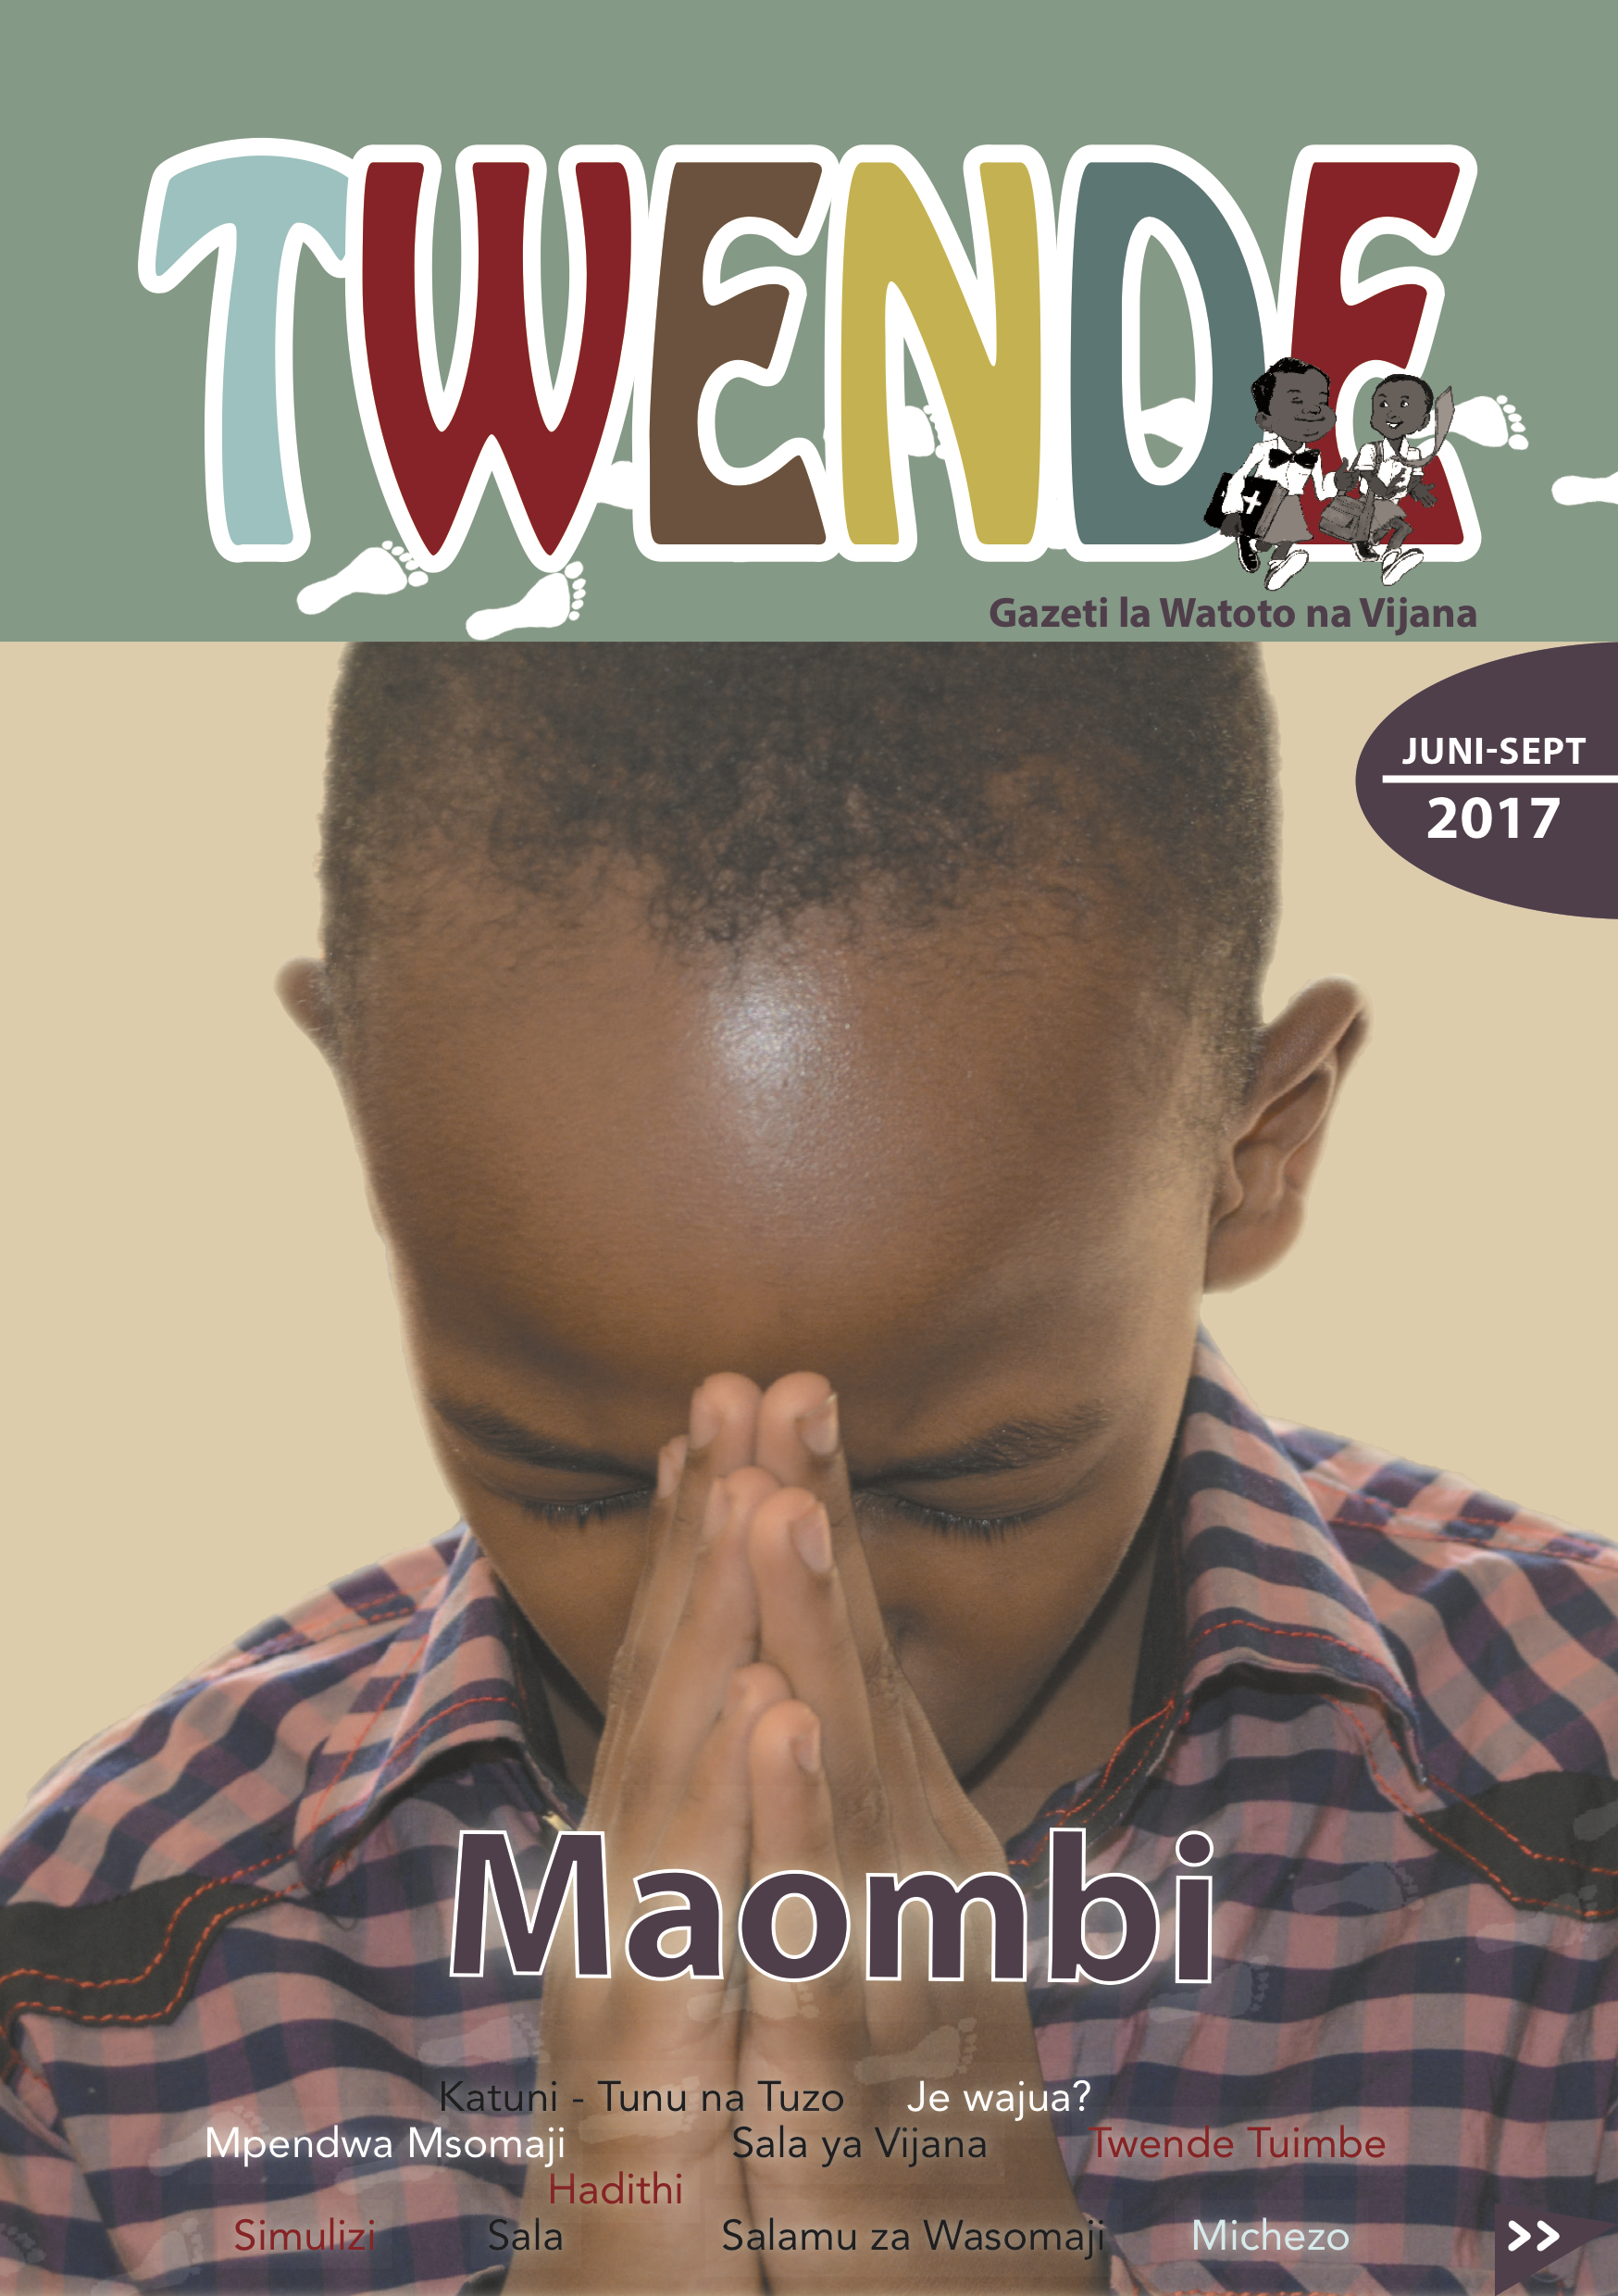 The latest issue of TWENDE is now available at only 500 tsh each.